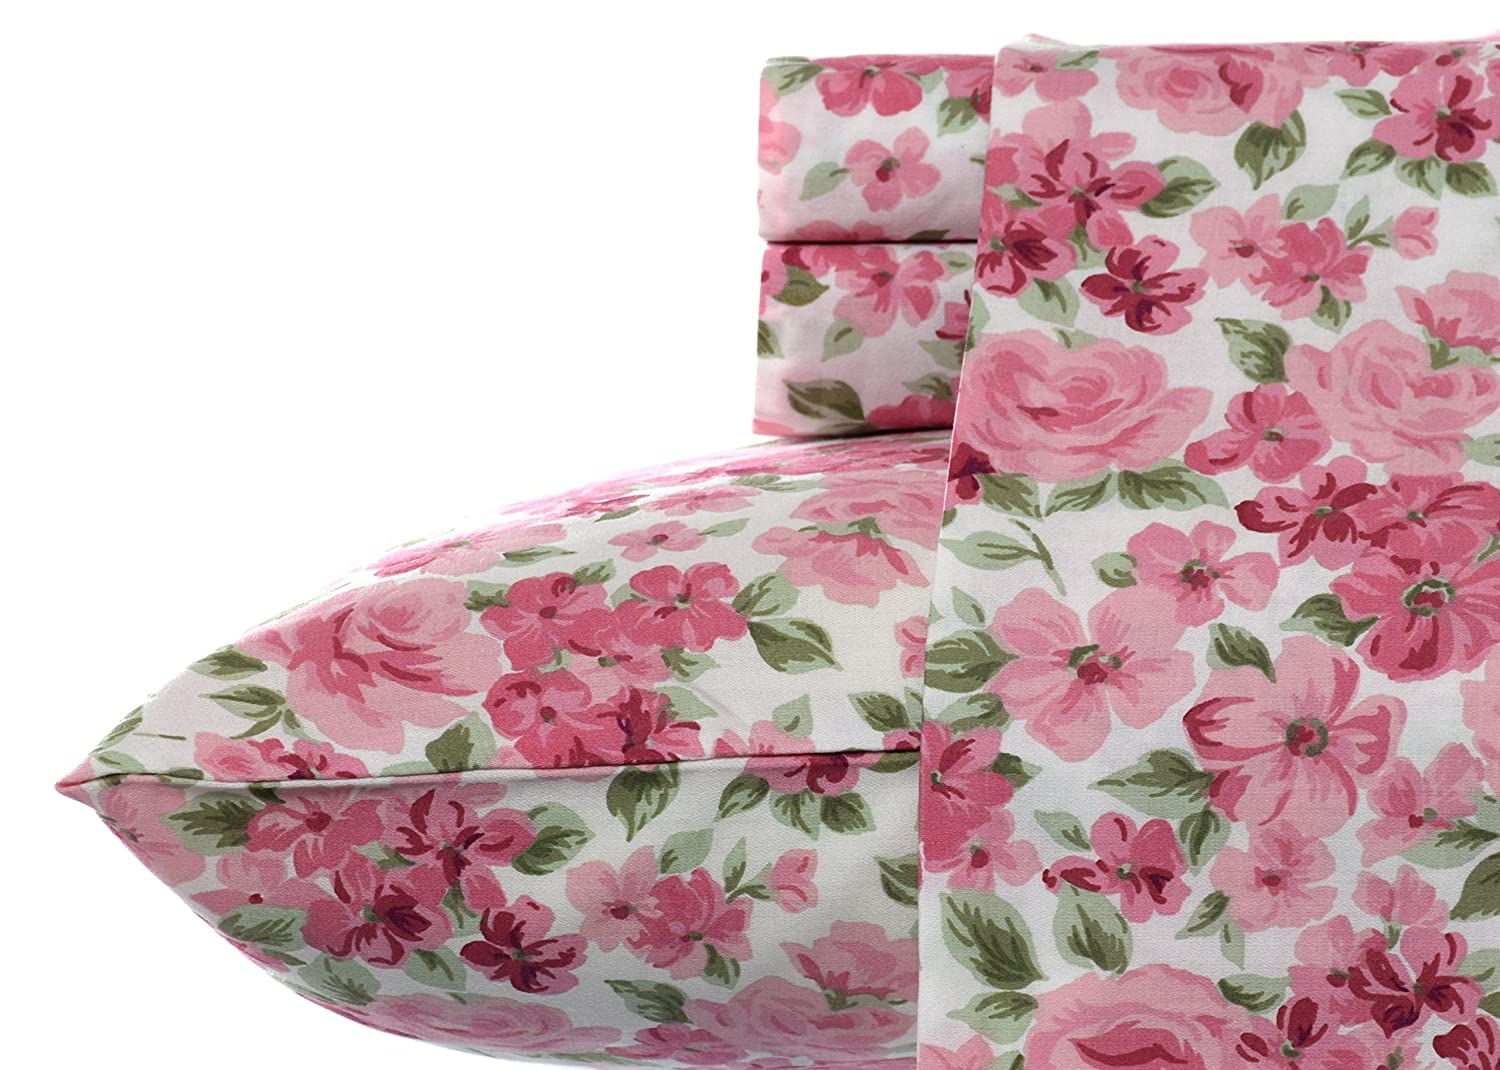 Laura Ashley Savannah Cotton Sheet Set, King, Pink laura ashley butterfly rainboots for girls